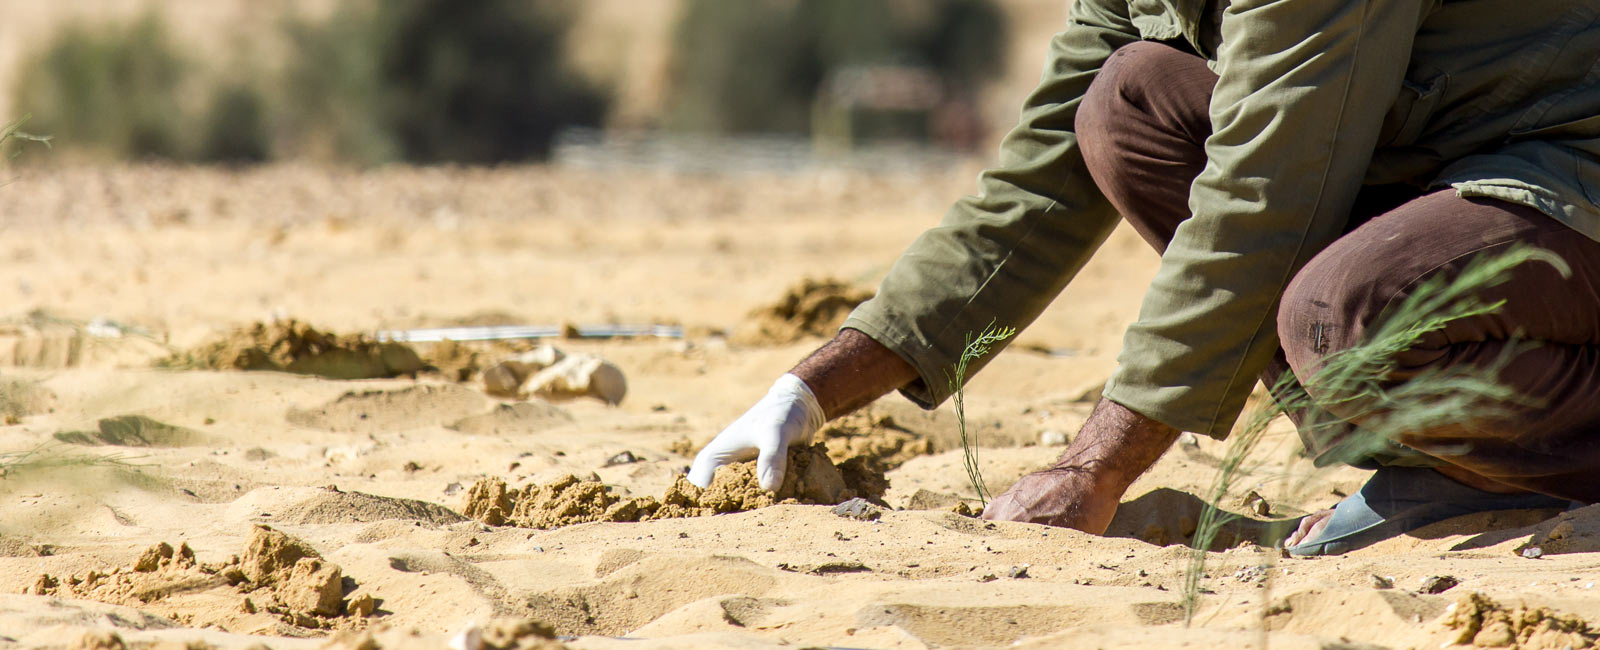 How we can tackle land degradation and desertification!